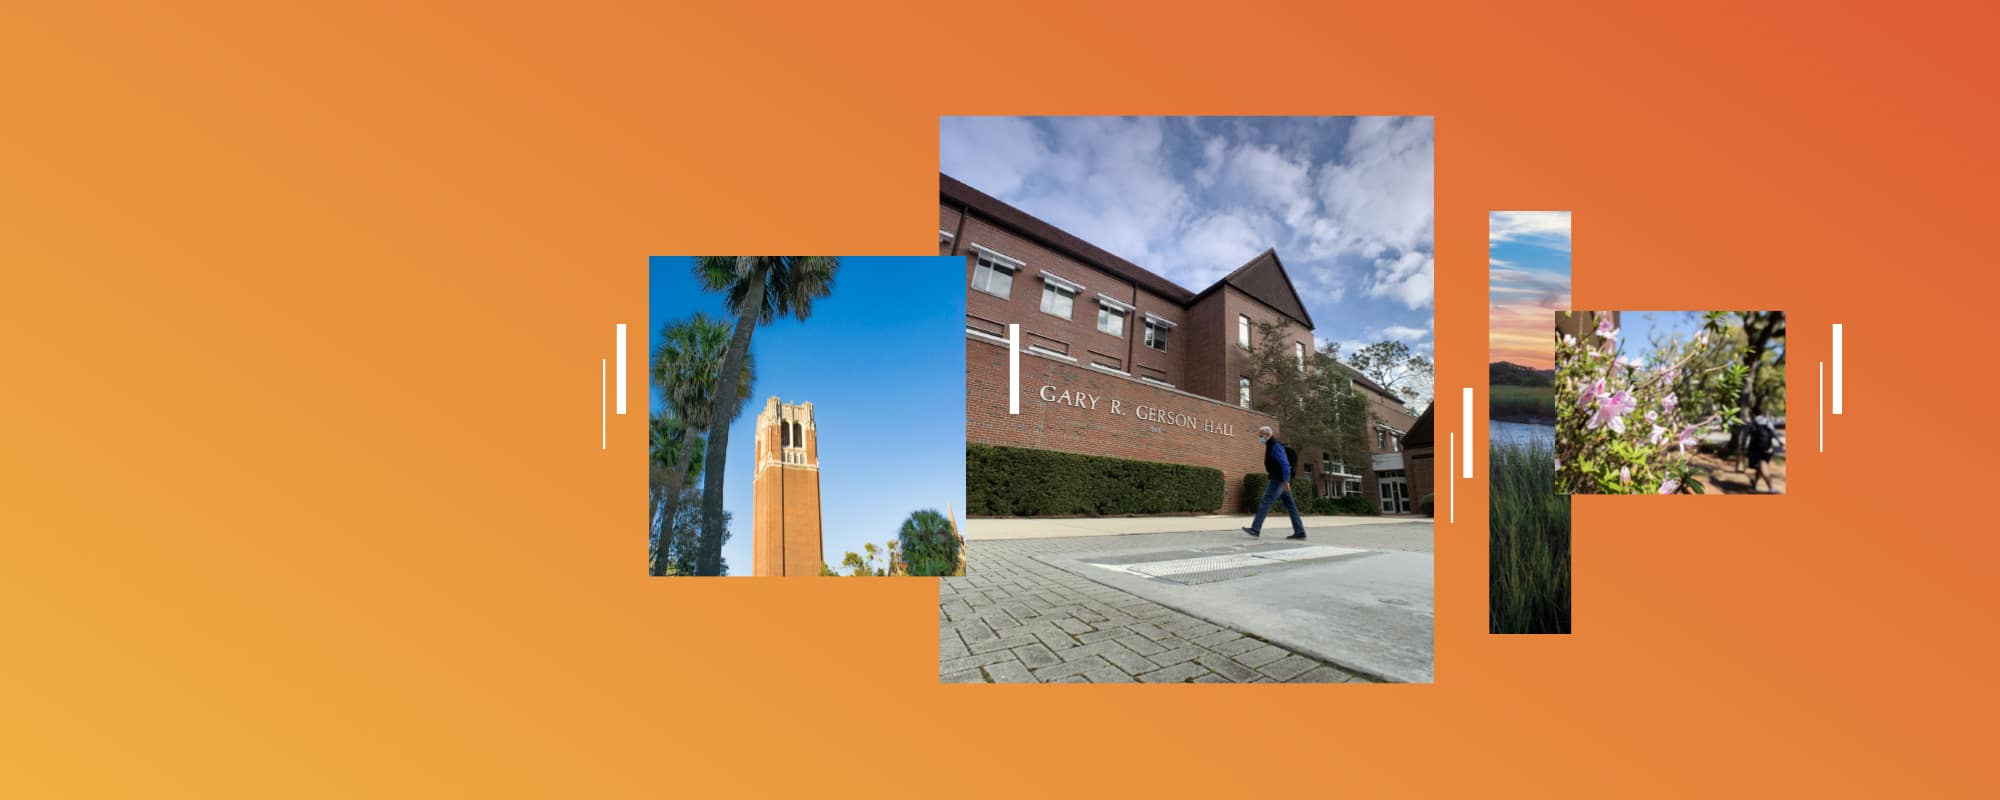 Orange background with images of campus including large tower, Gerson Hall.